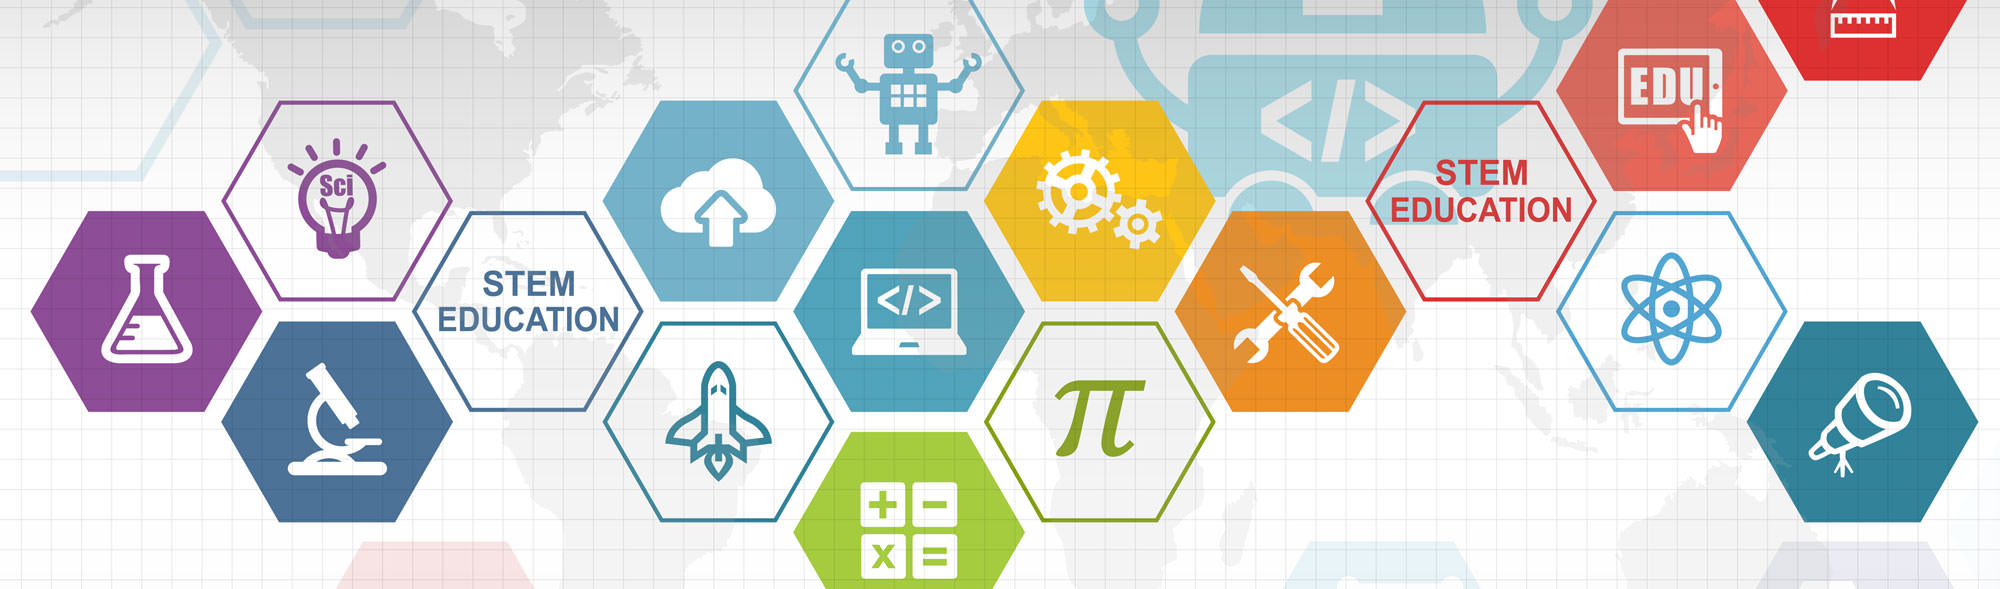 Icons and graphics related to STEM subjects